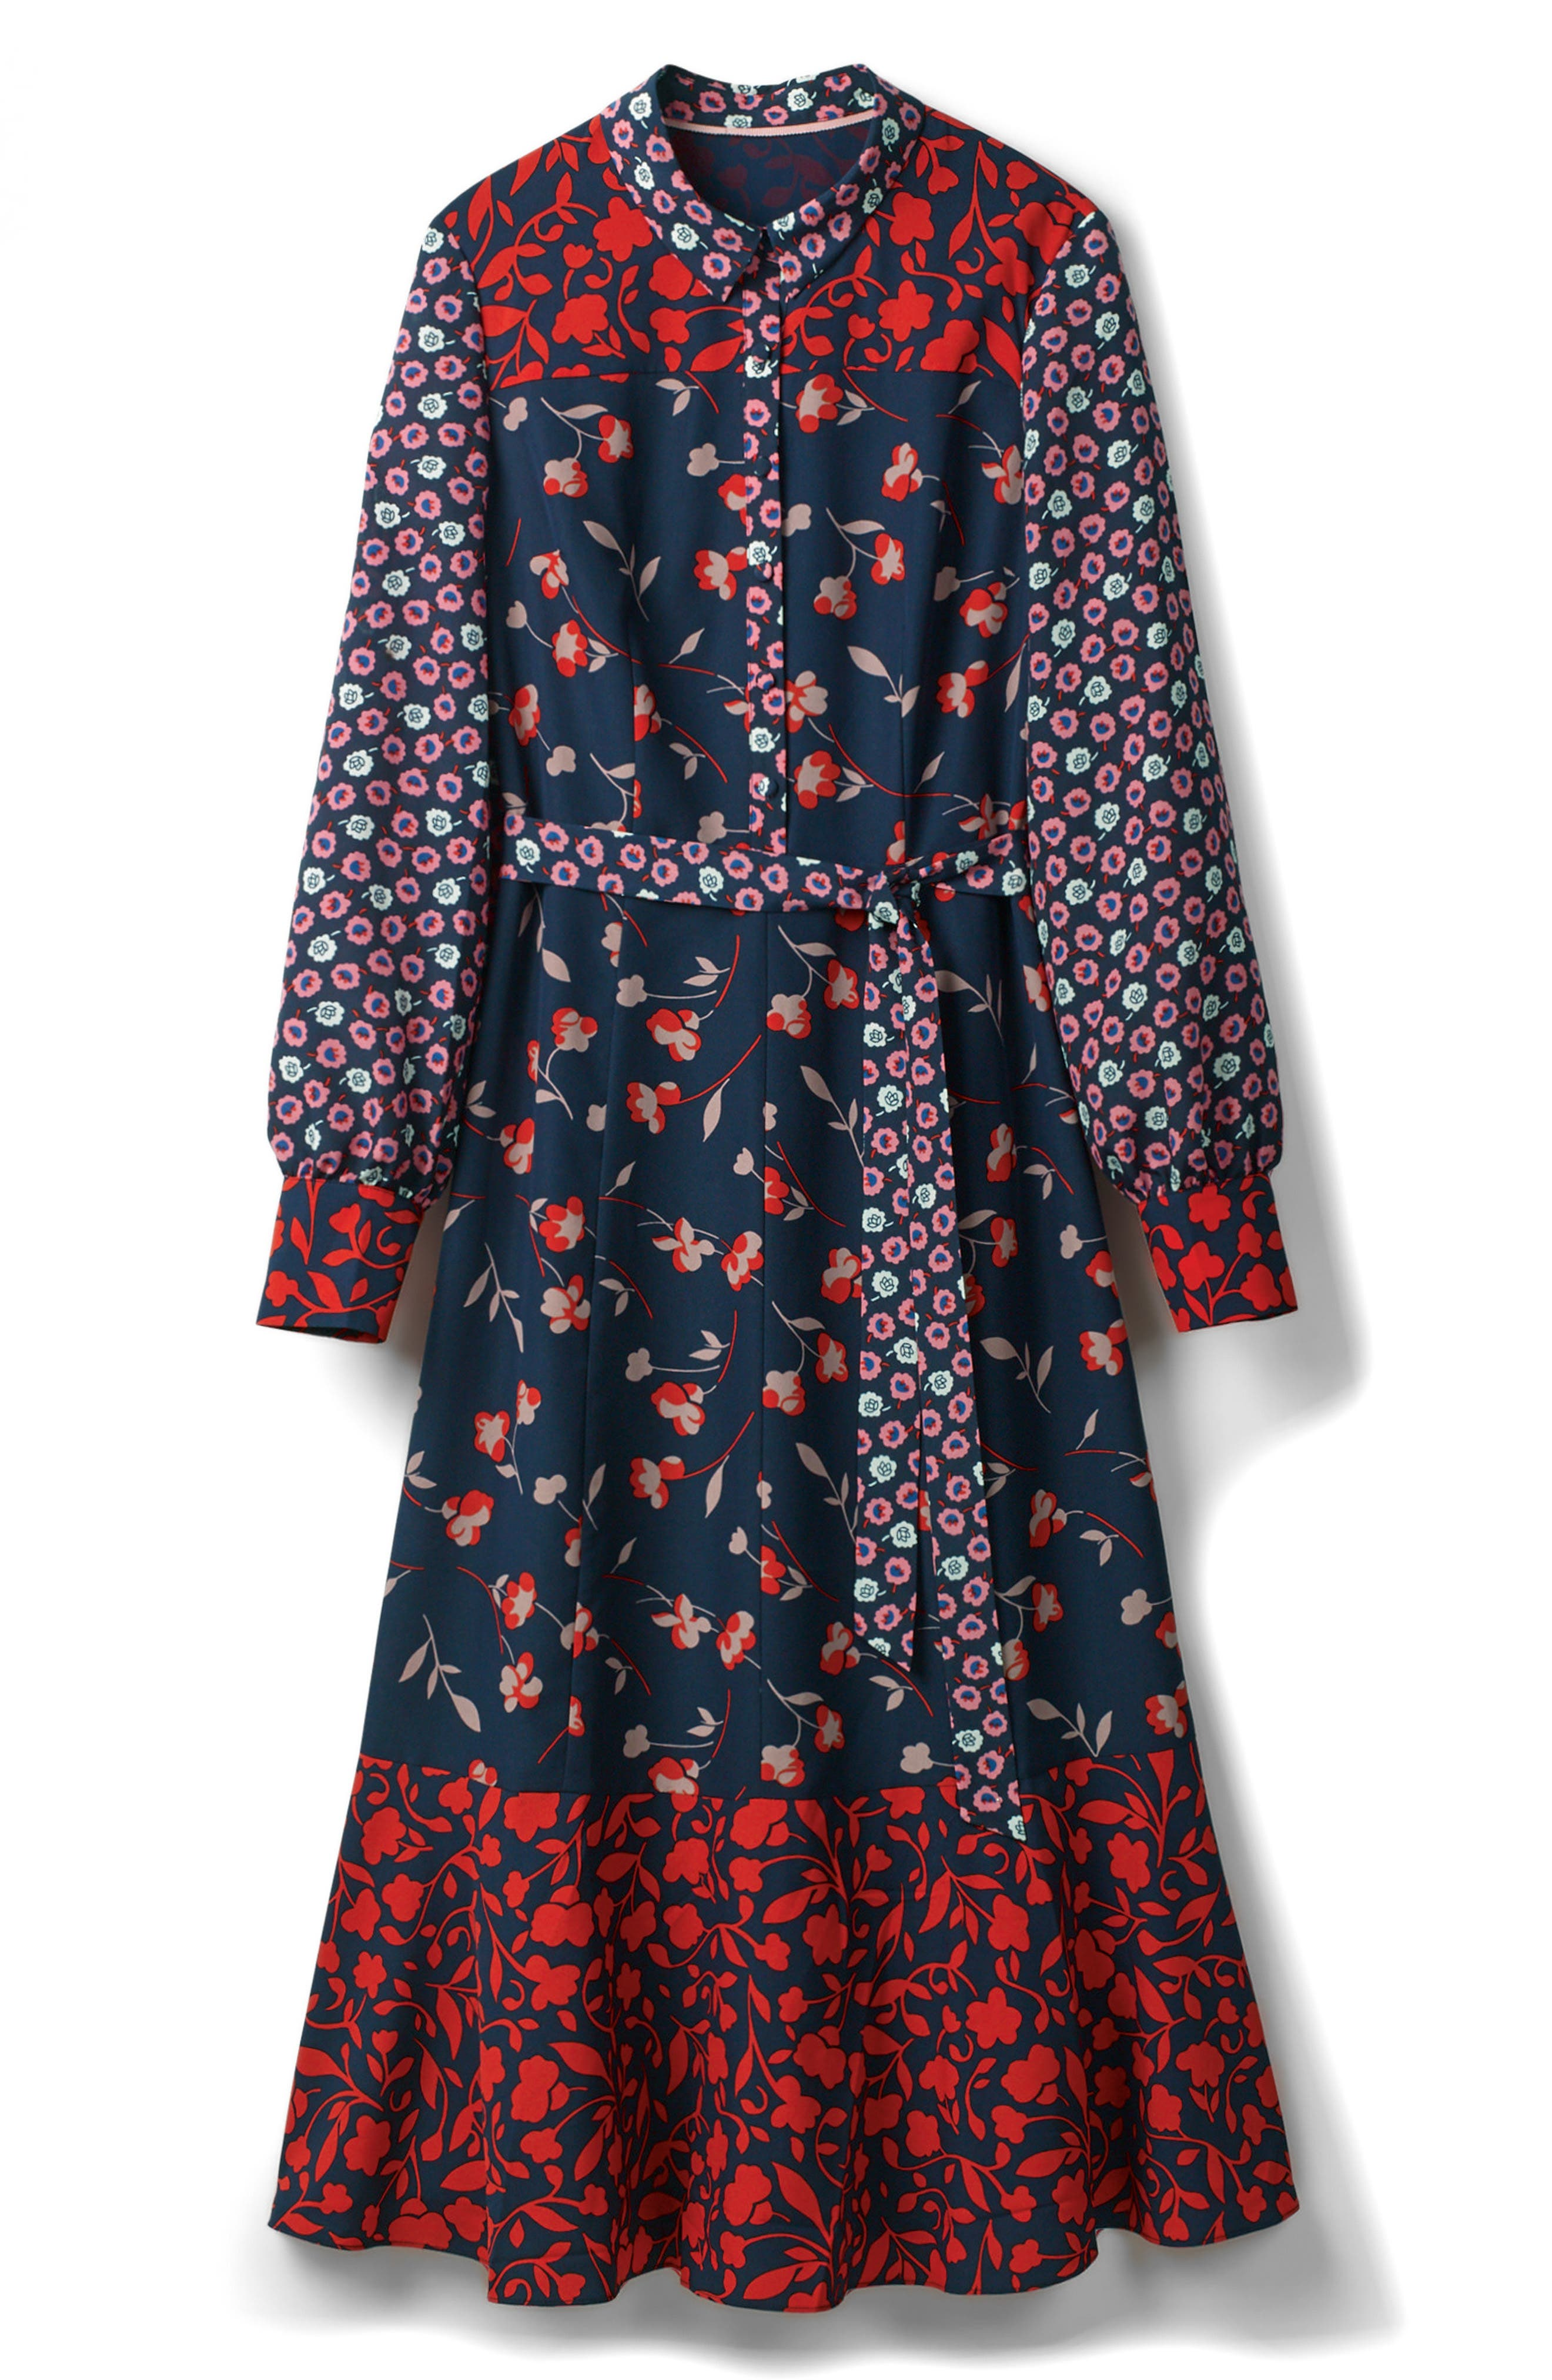 Mixed Print Midi Shirtdress,                         Main,                         color, Navy/ Wildflower Sma